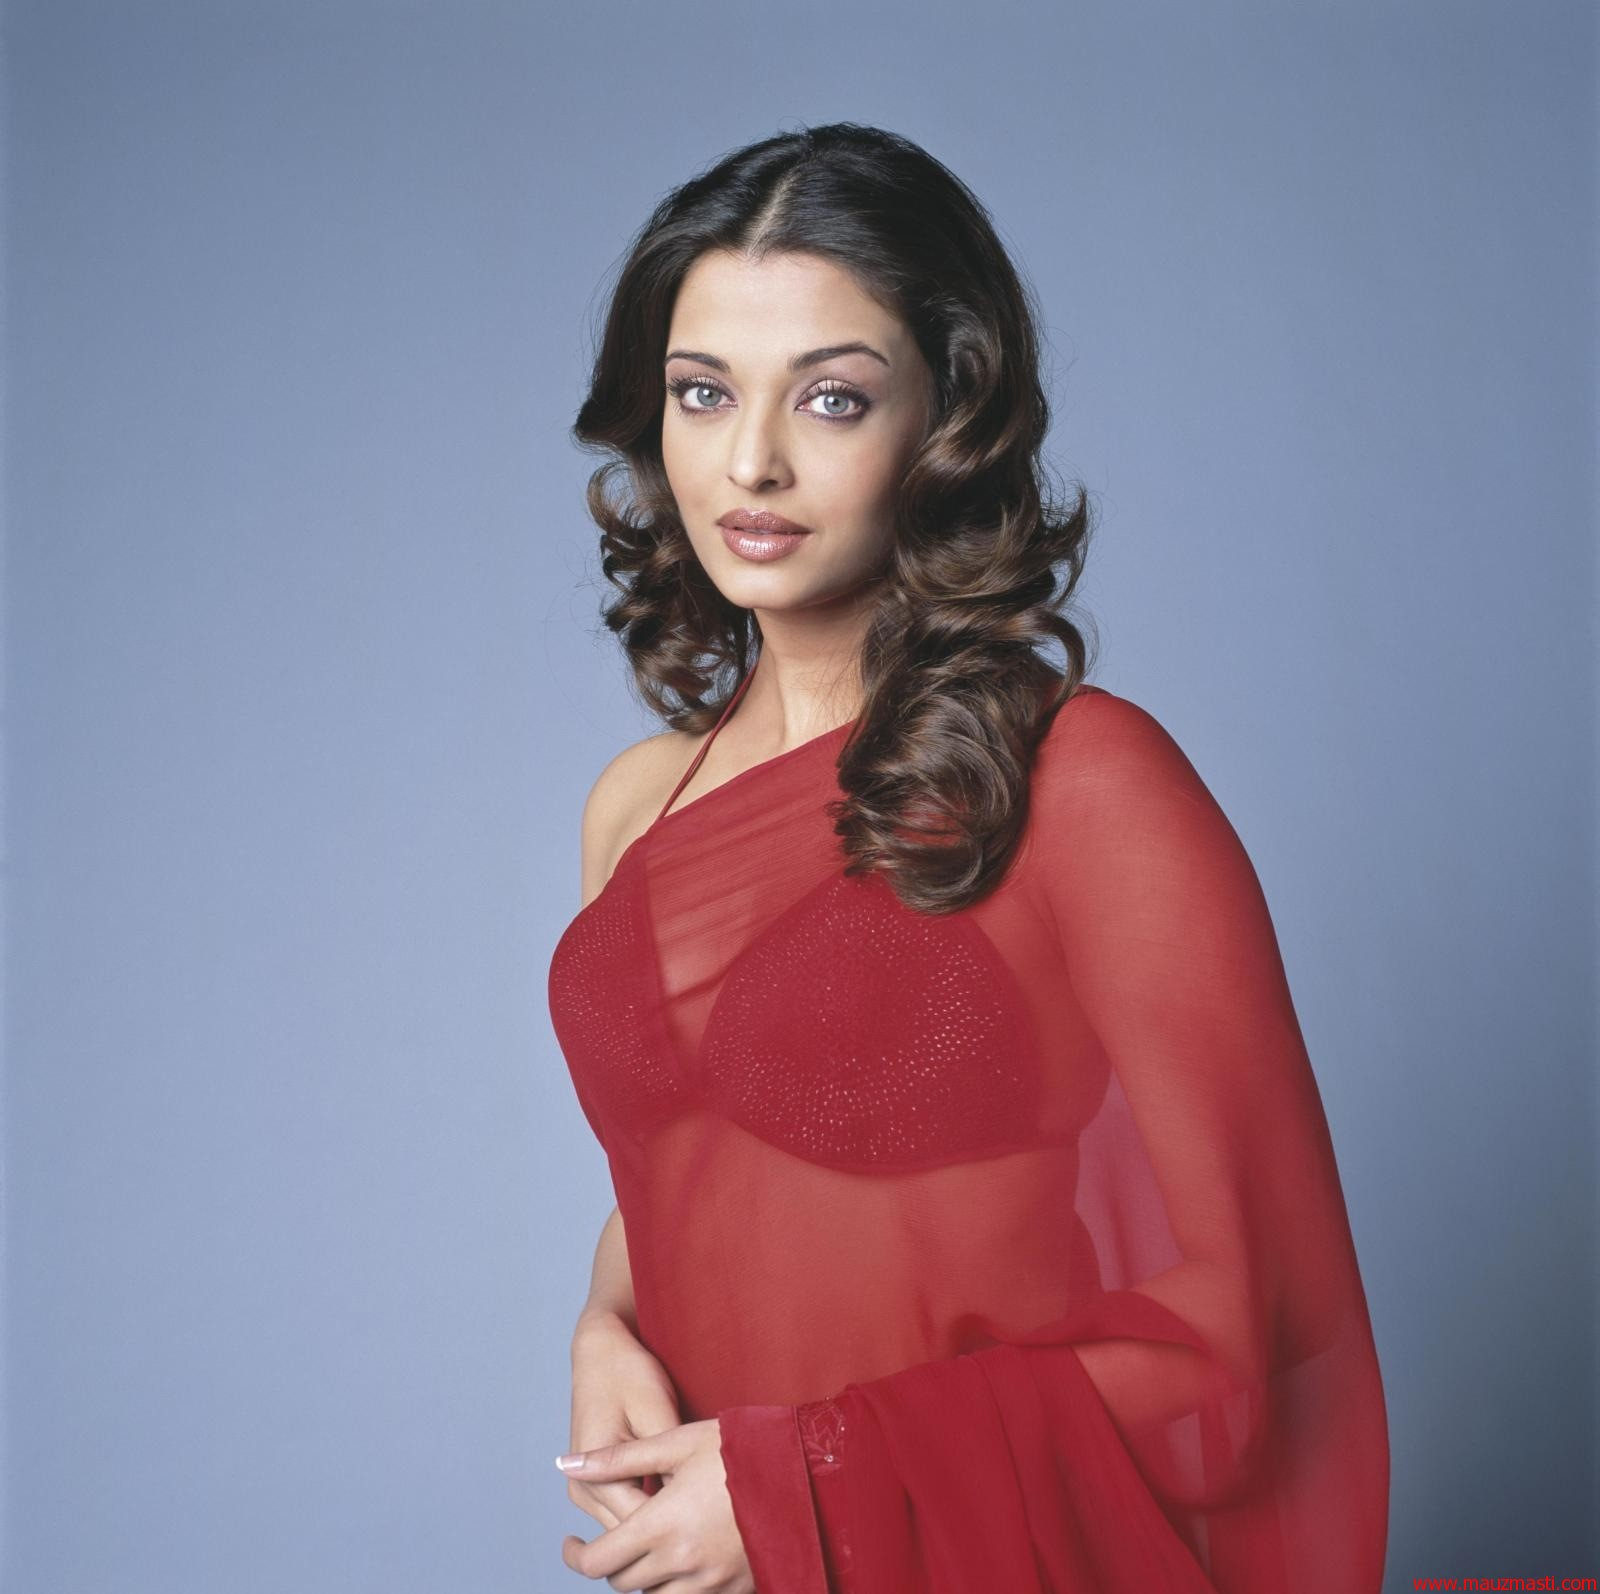 Bollywood Sexy Images Aishwarya Rai Hot In Red Saree-1330